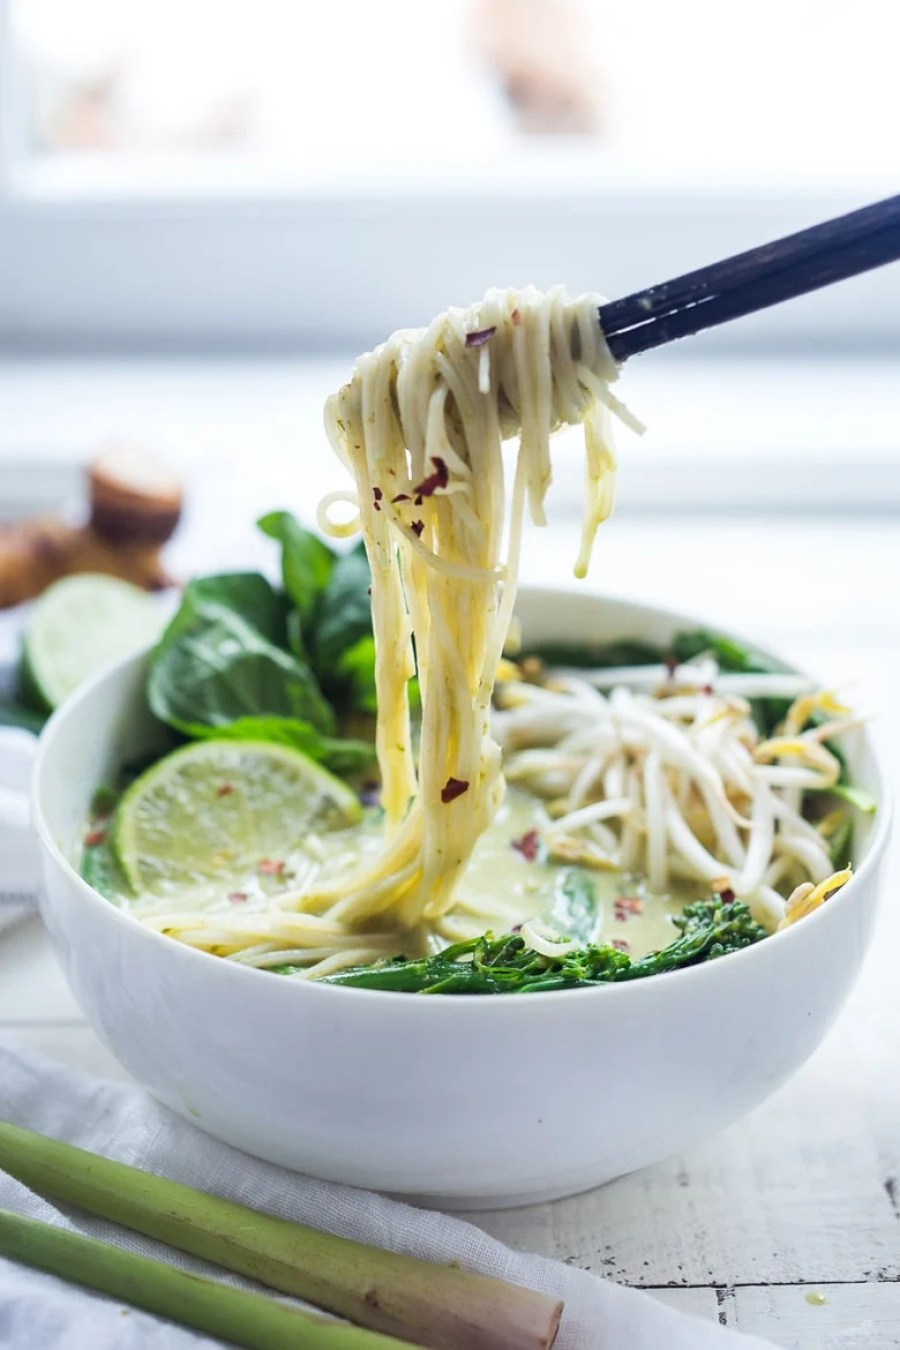 Bone-warming, Thai Green Curry Noodle Soup - with broccolini and your choice of tofu or chicken. | www.feastingathome.com